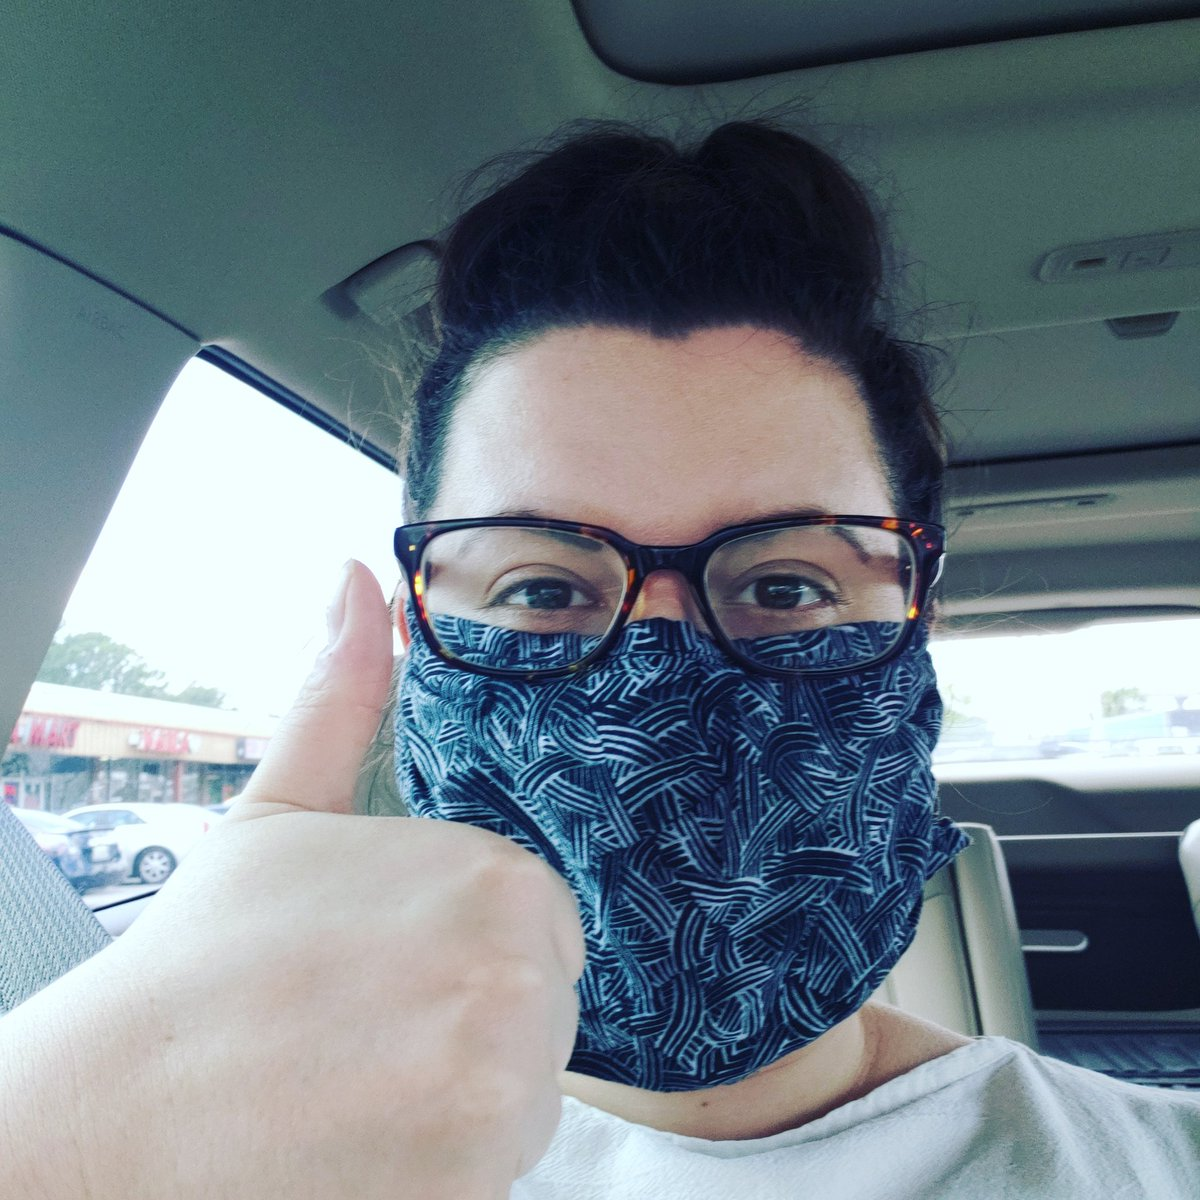 Both #jacksonville and #nassaucounty have passed mask ordinances. Pretty sure I've had (asymptomatic) COVID but it's not about me. It's about those around me I can help protect. Sure, it's annoying but who cares? So is being sick.   #stayathome #doyourpart #maskup https://t.co/jSs7kcWq7S